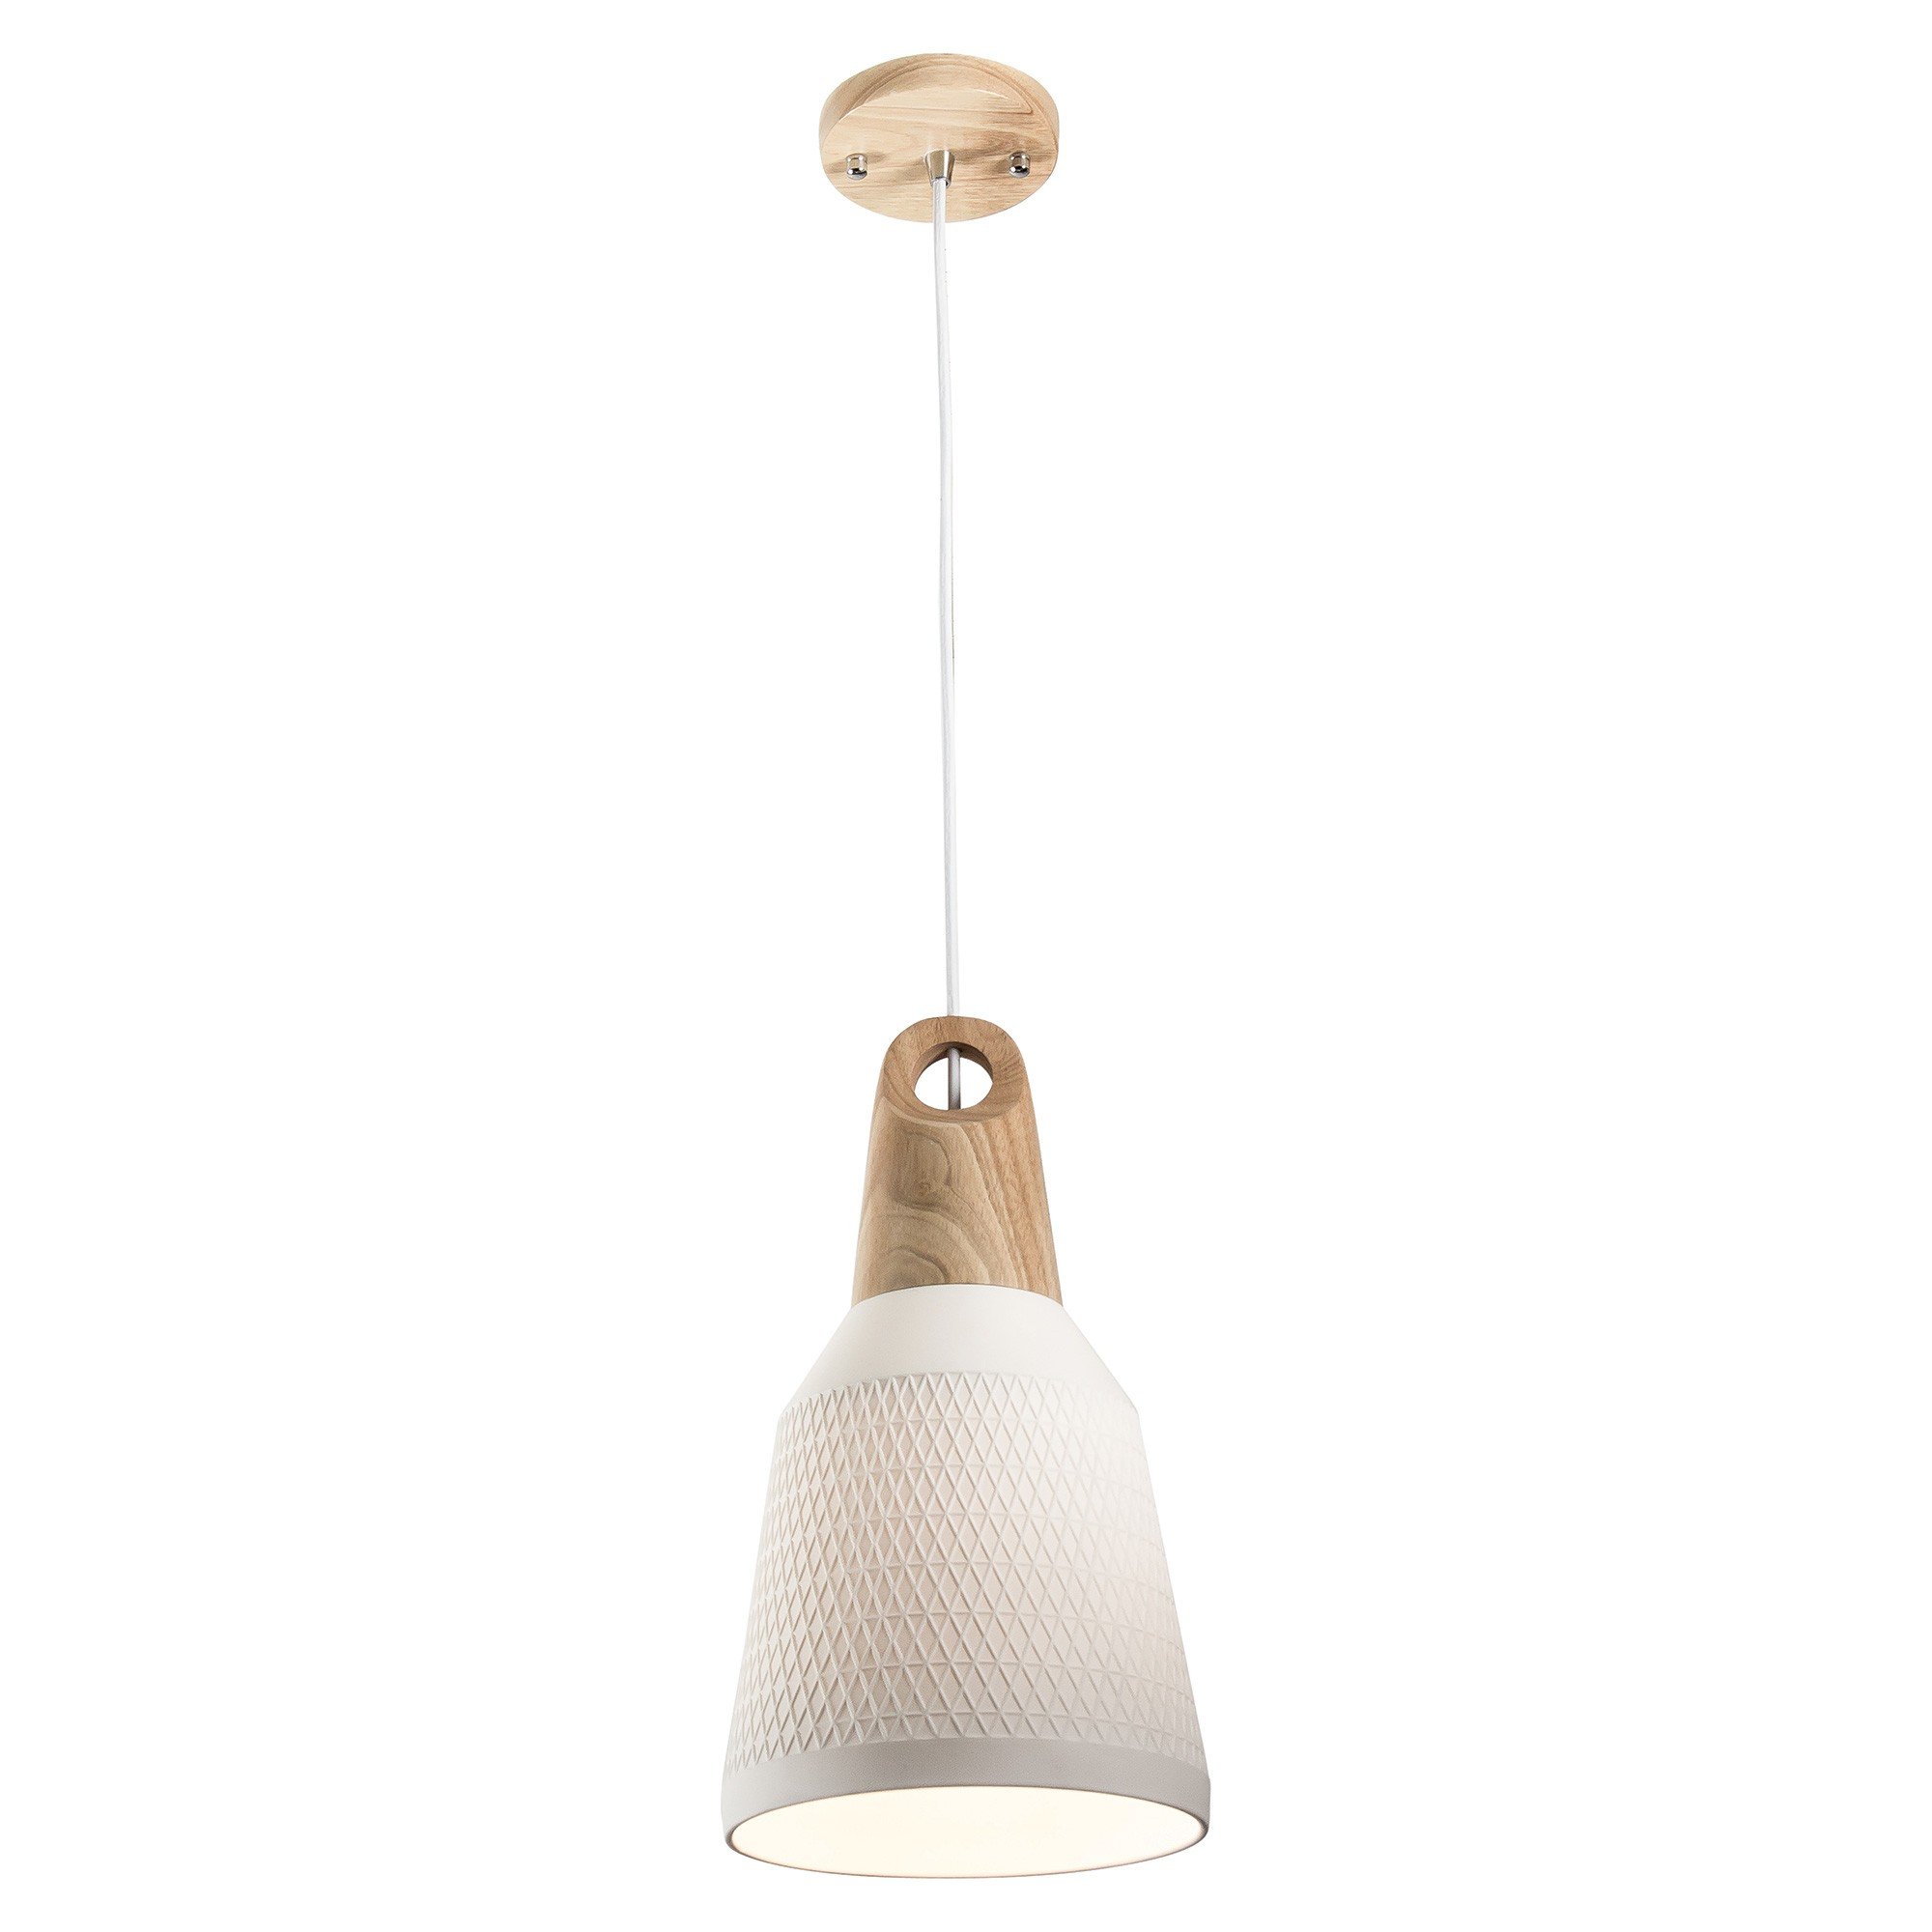 Morrissey Ceramic & Oak Timber Pendant Light, Slim